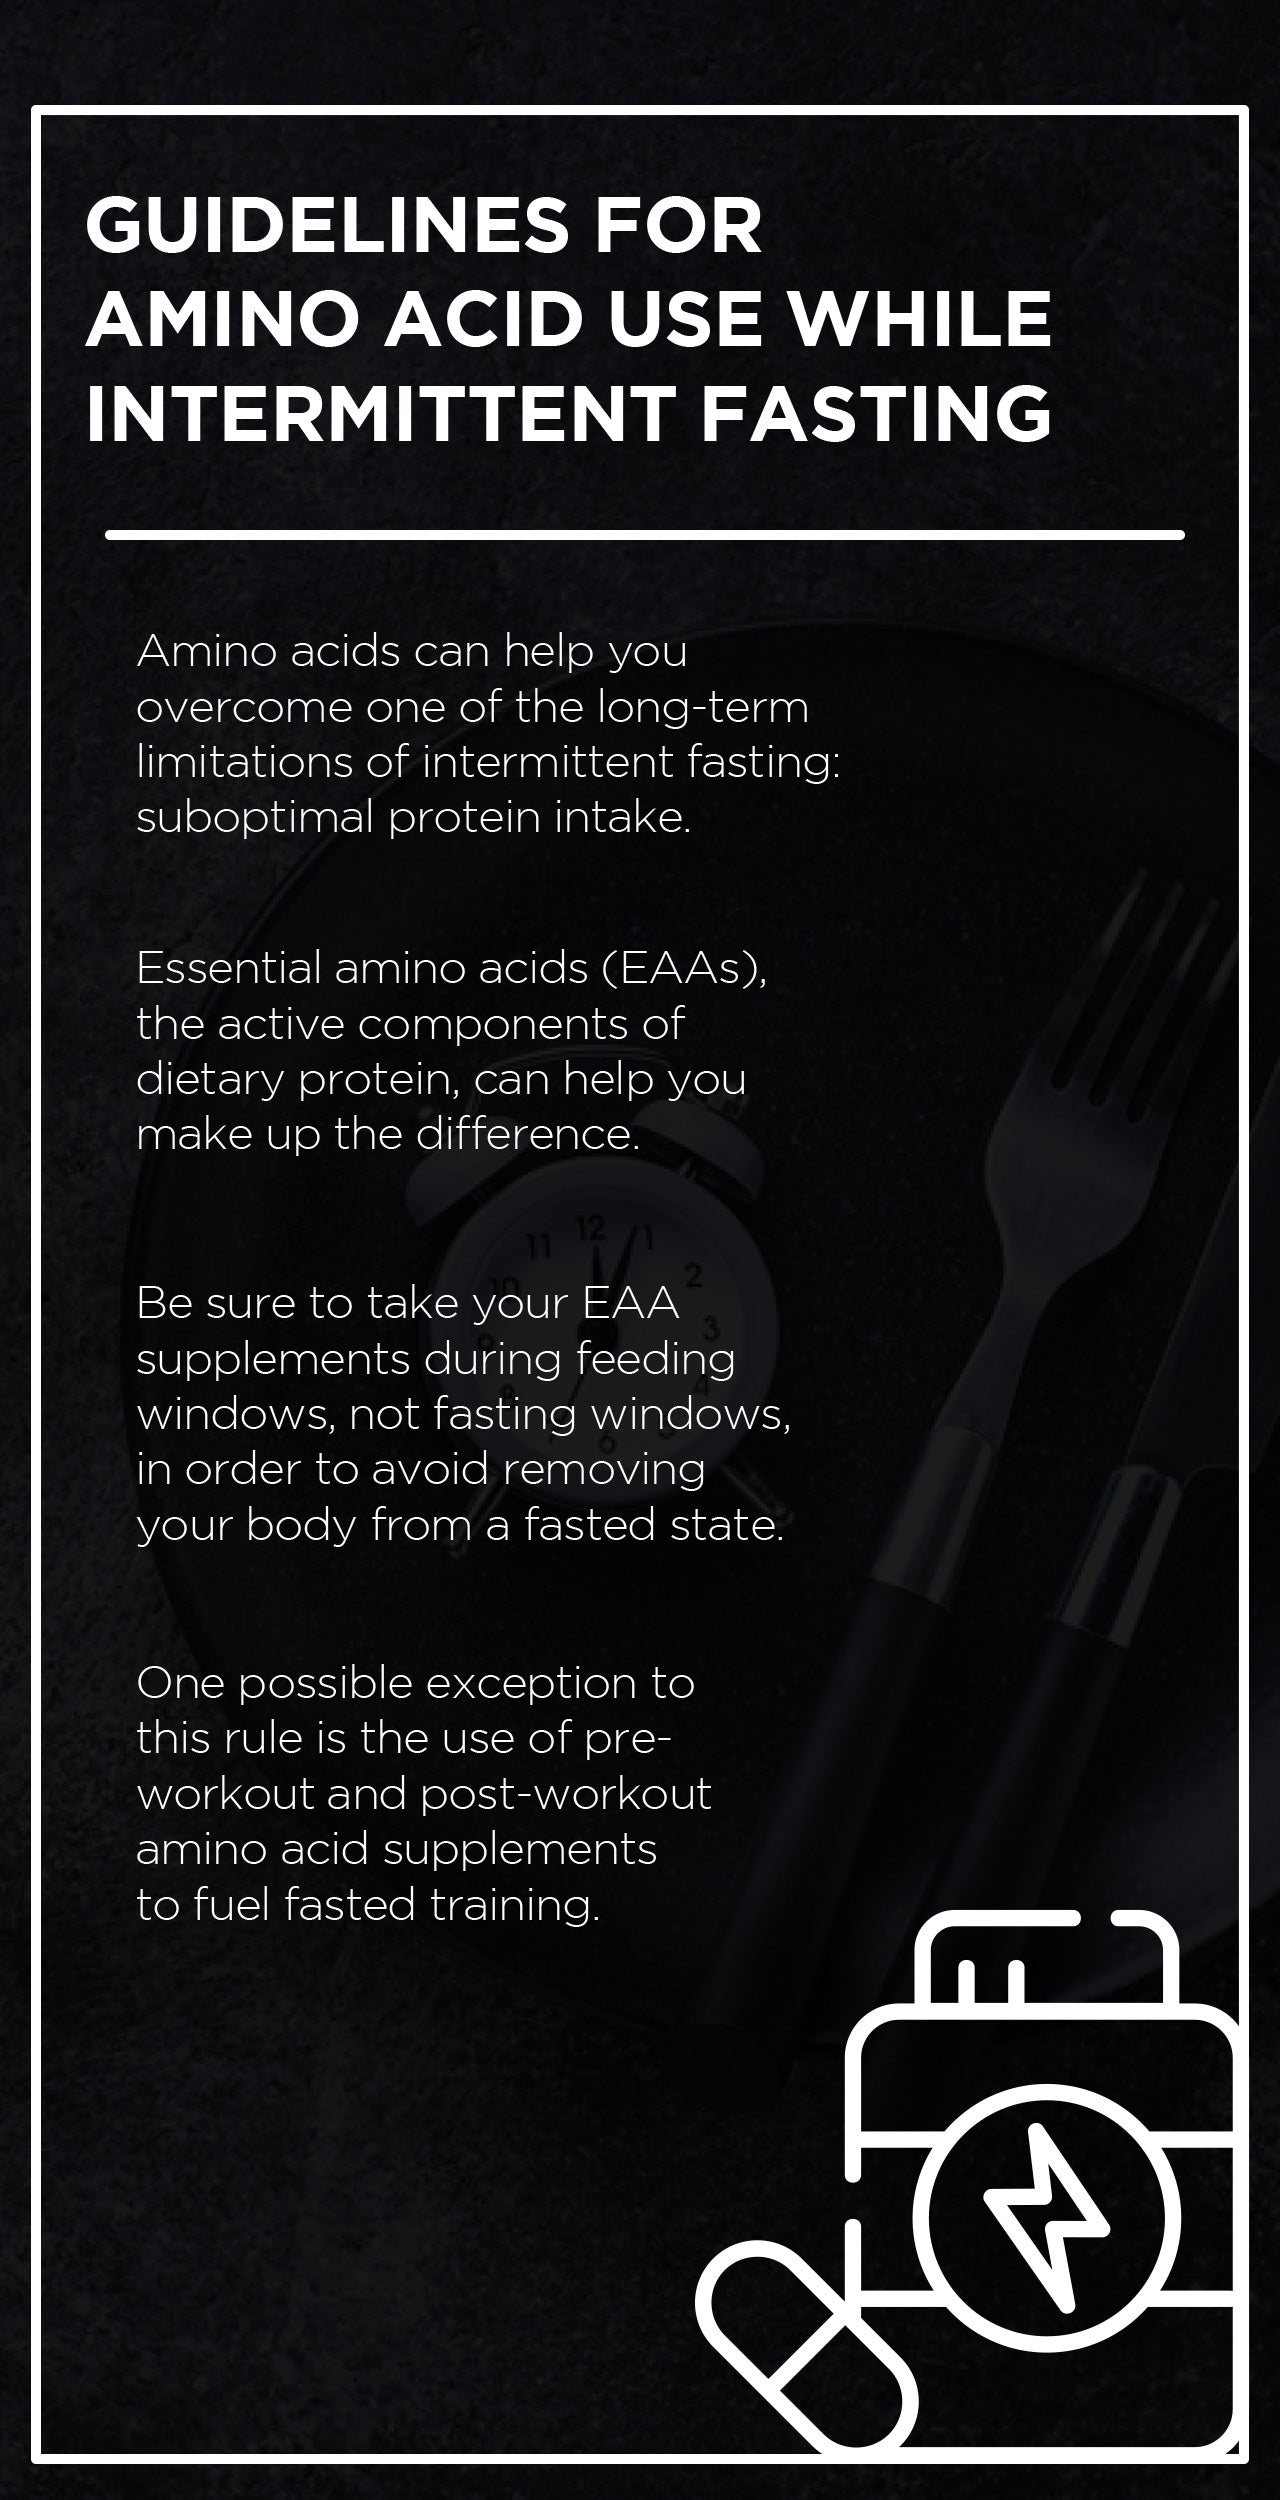 How to use amino acids with intermittent fasting